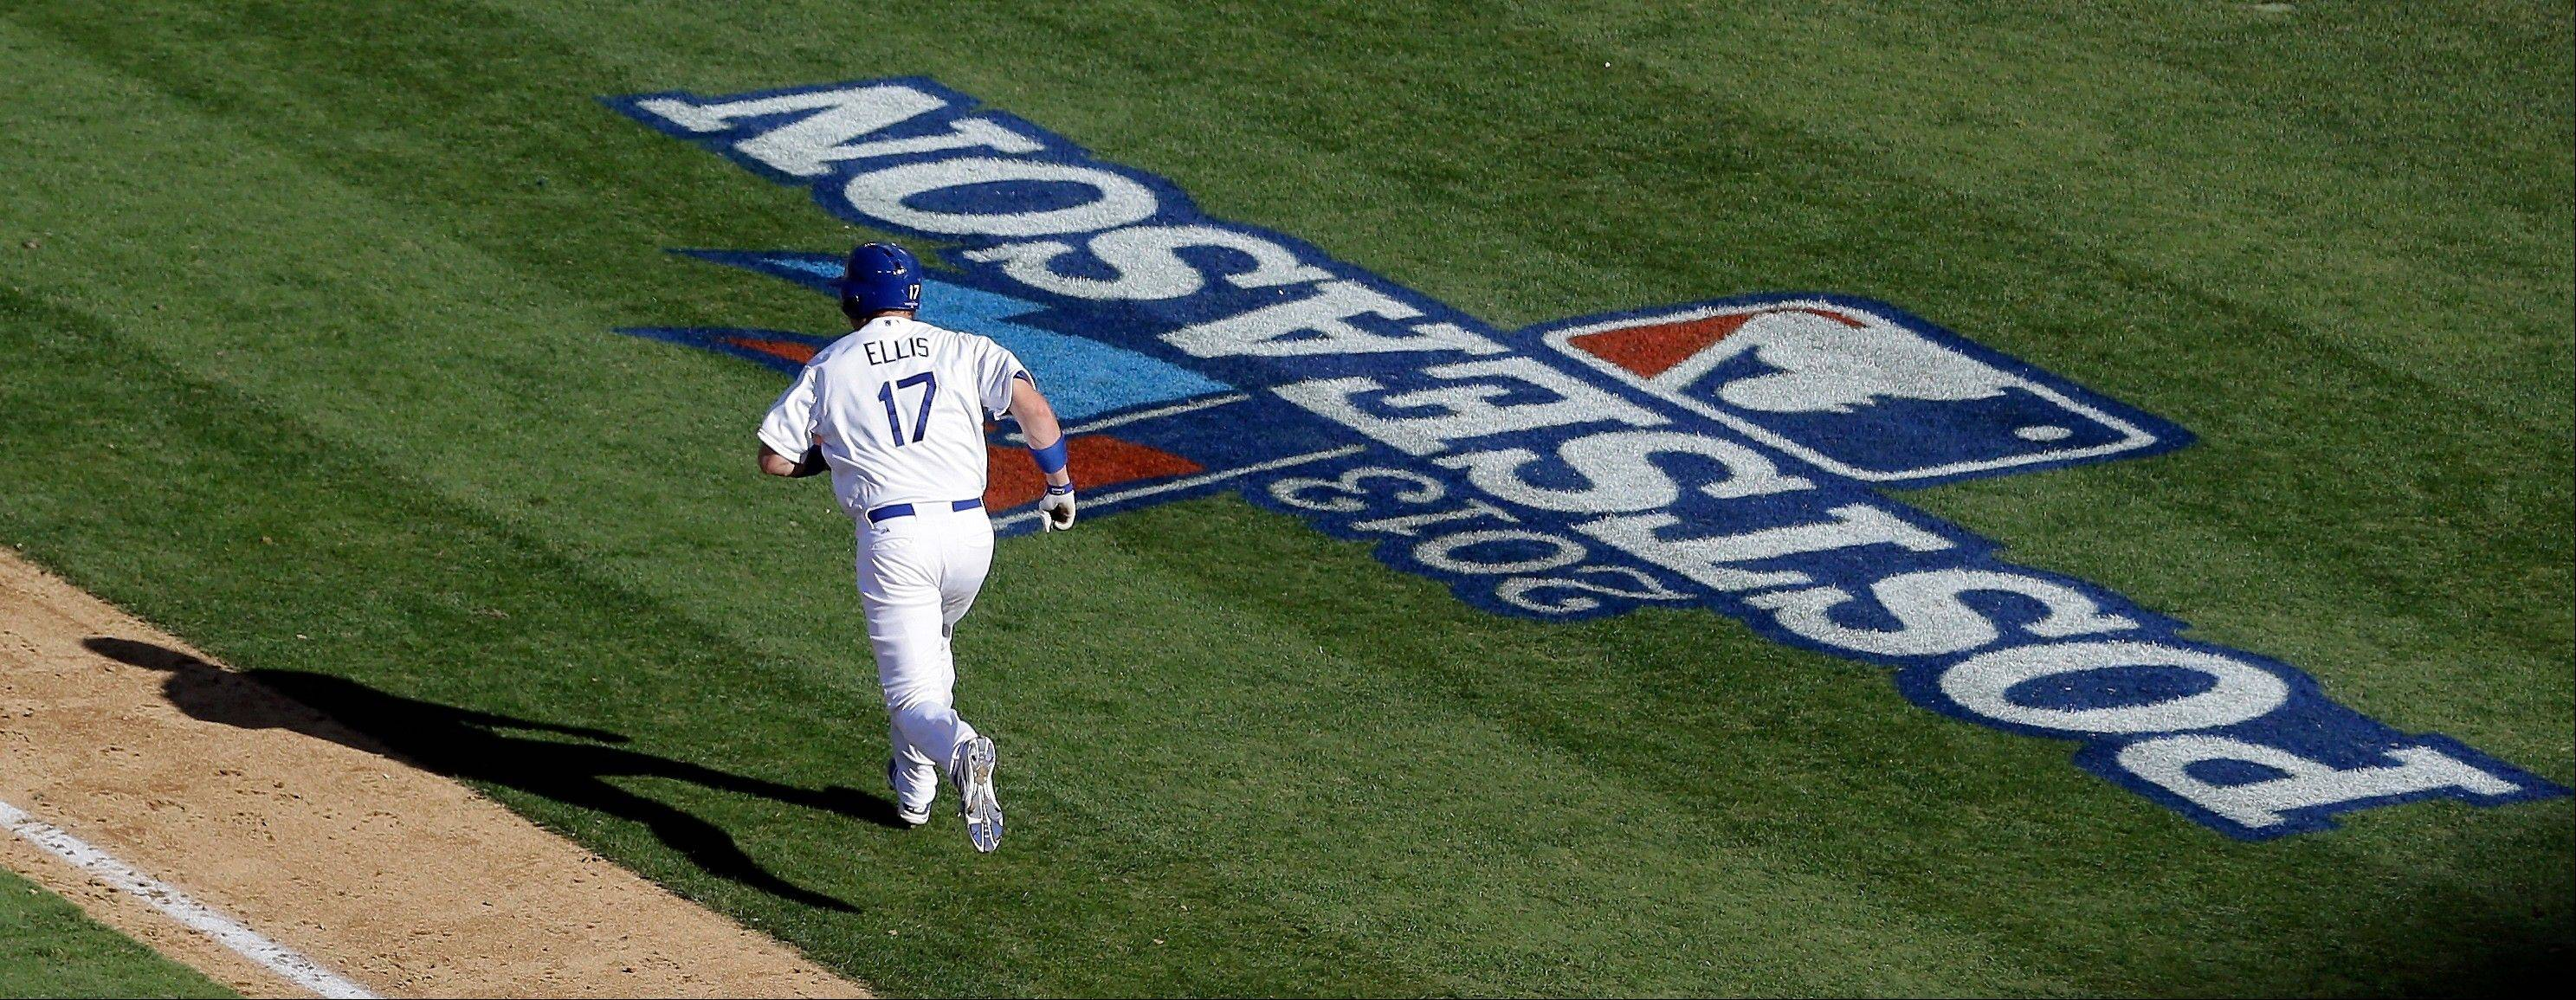 The Dodgers' A.J. Ellis runs after hitting a home run during the seventh inning of Game 5.